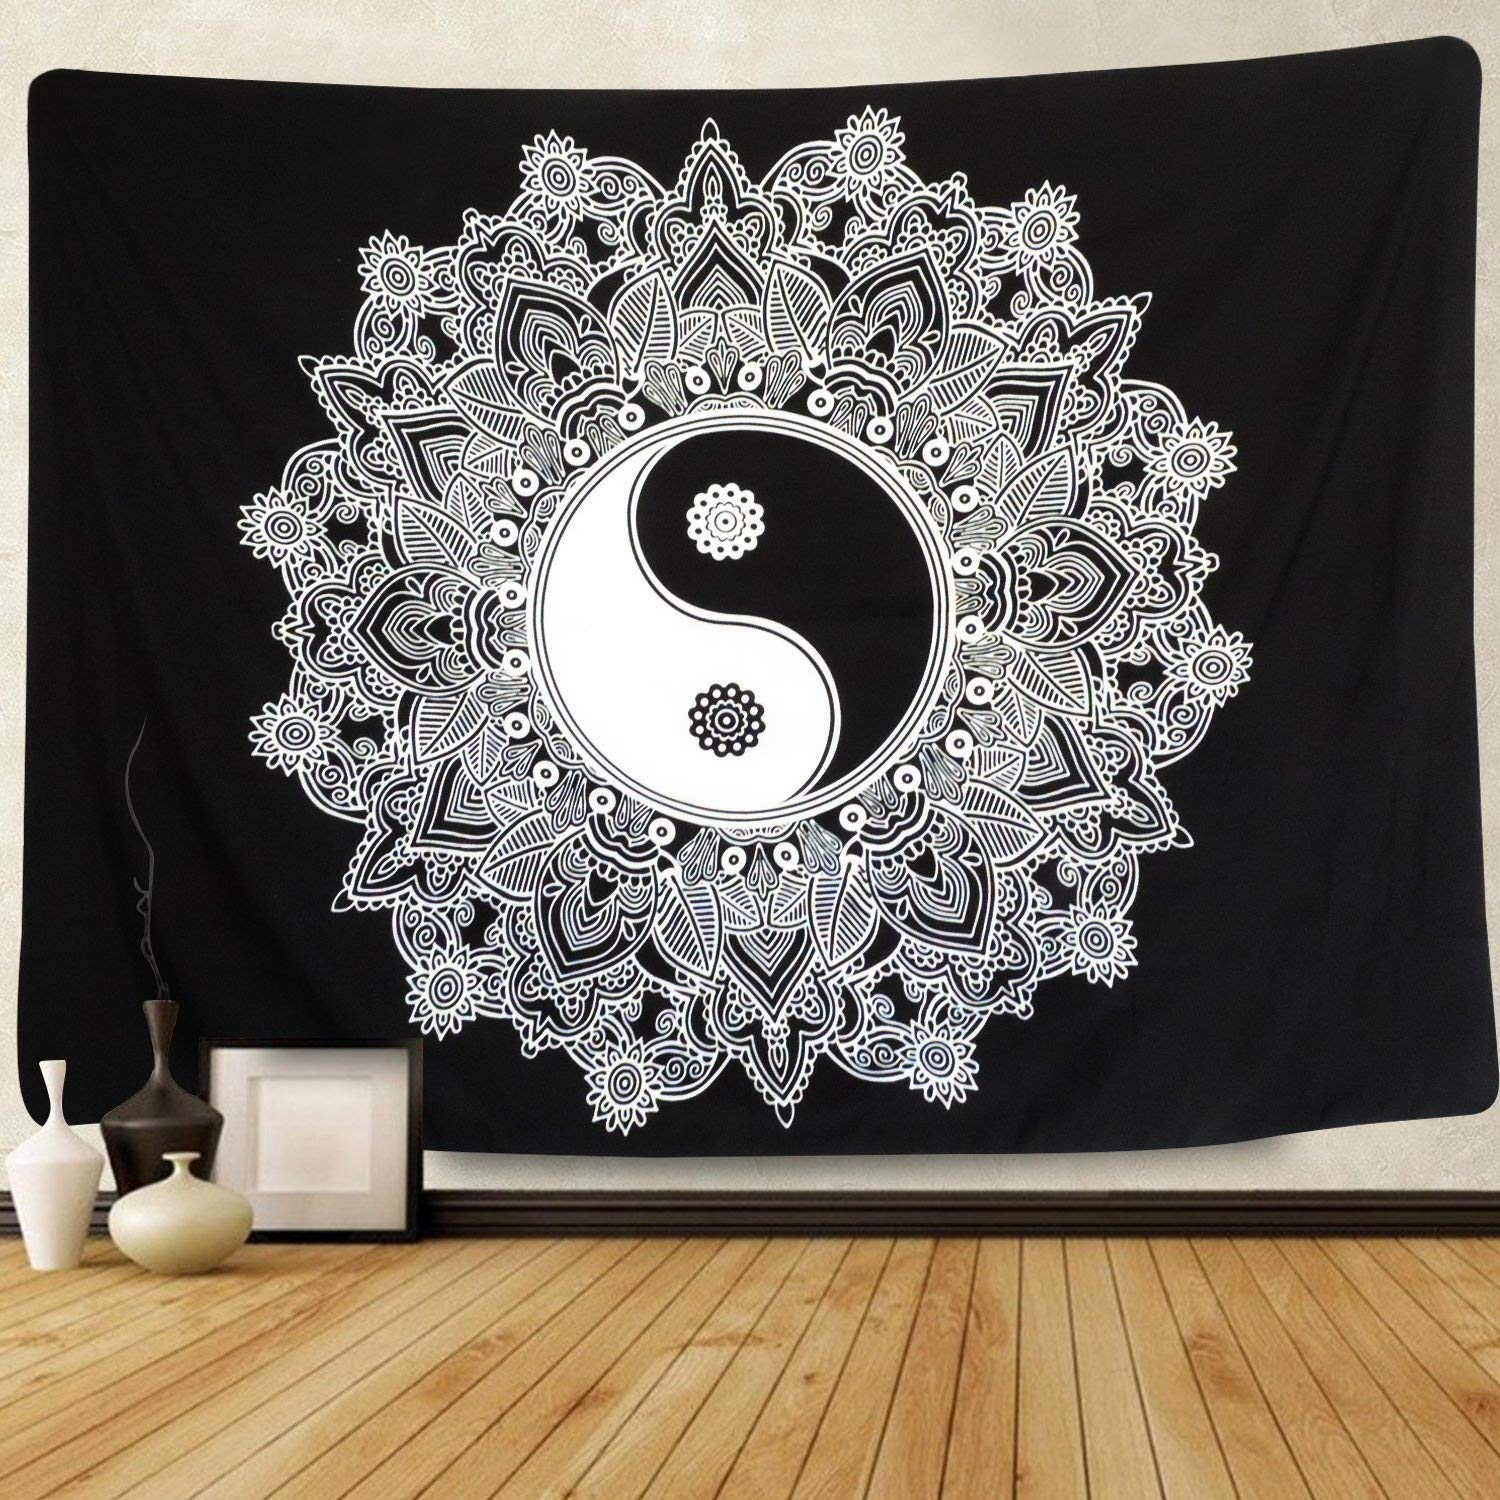 Sunm Boutique Black And White Tapestry Wall Hanging YinYang Tapestry Mandala Tapestry Indian Traditional Art Bohemian Wall Tapestry